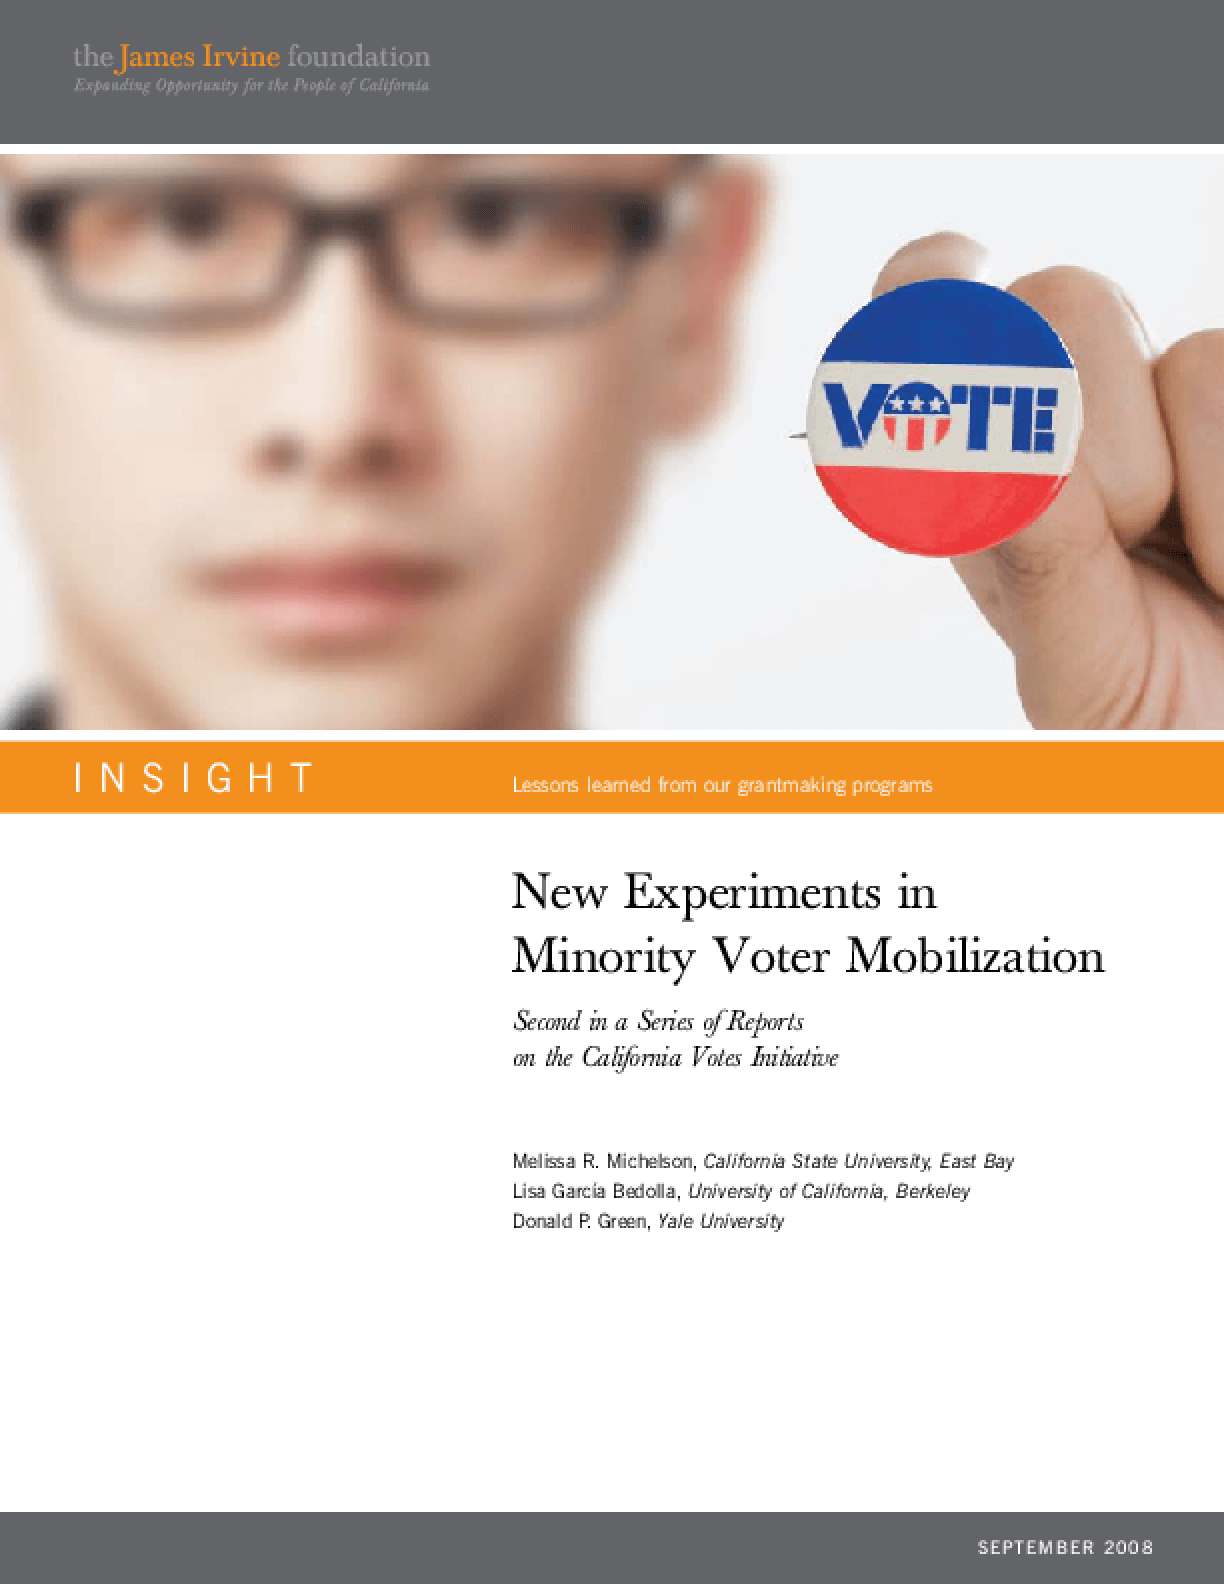 New Experiments in Minority Voter Mobilization: Second in a Series of Reports on the California Votes Initiative